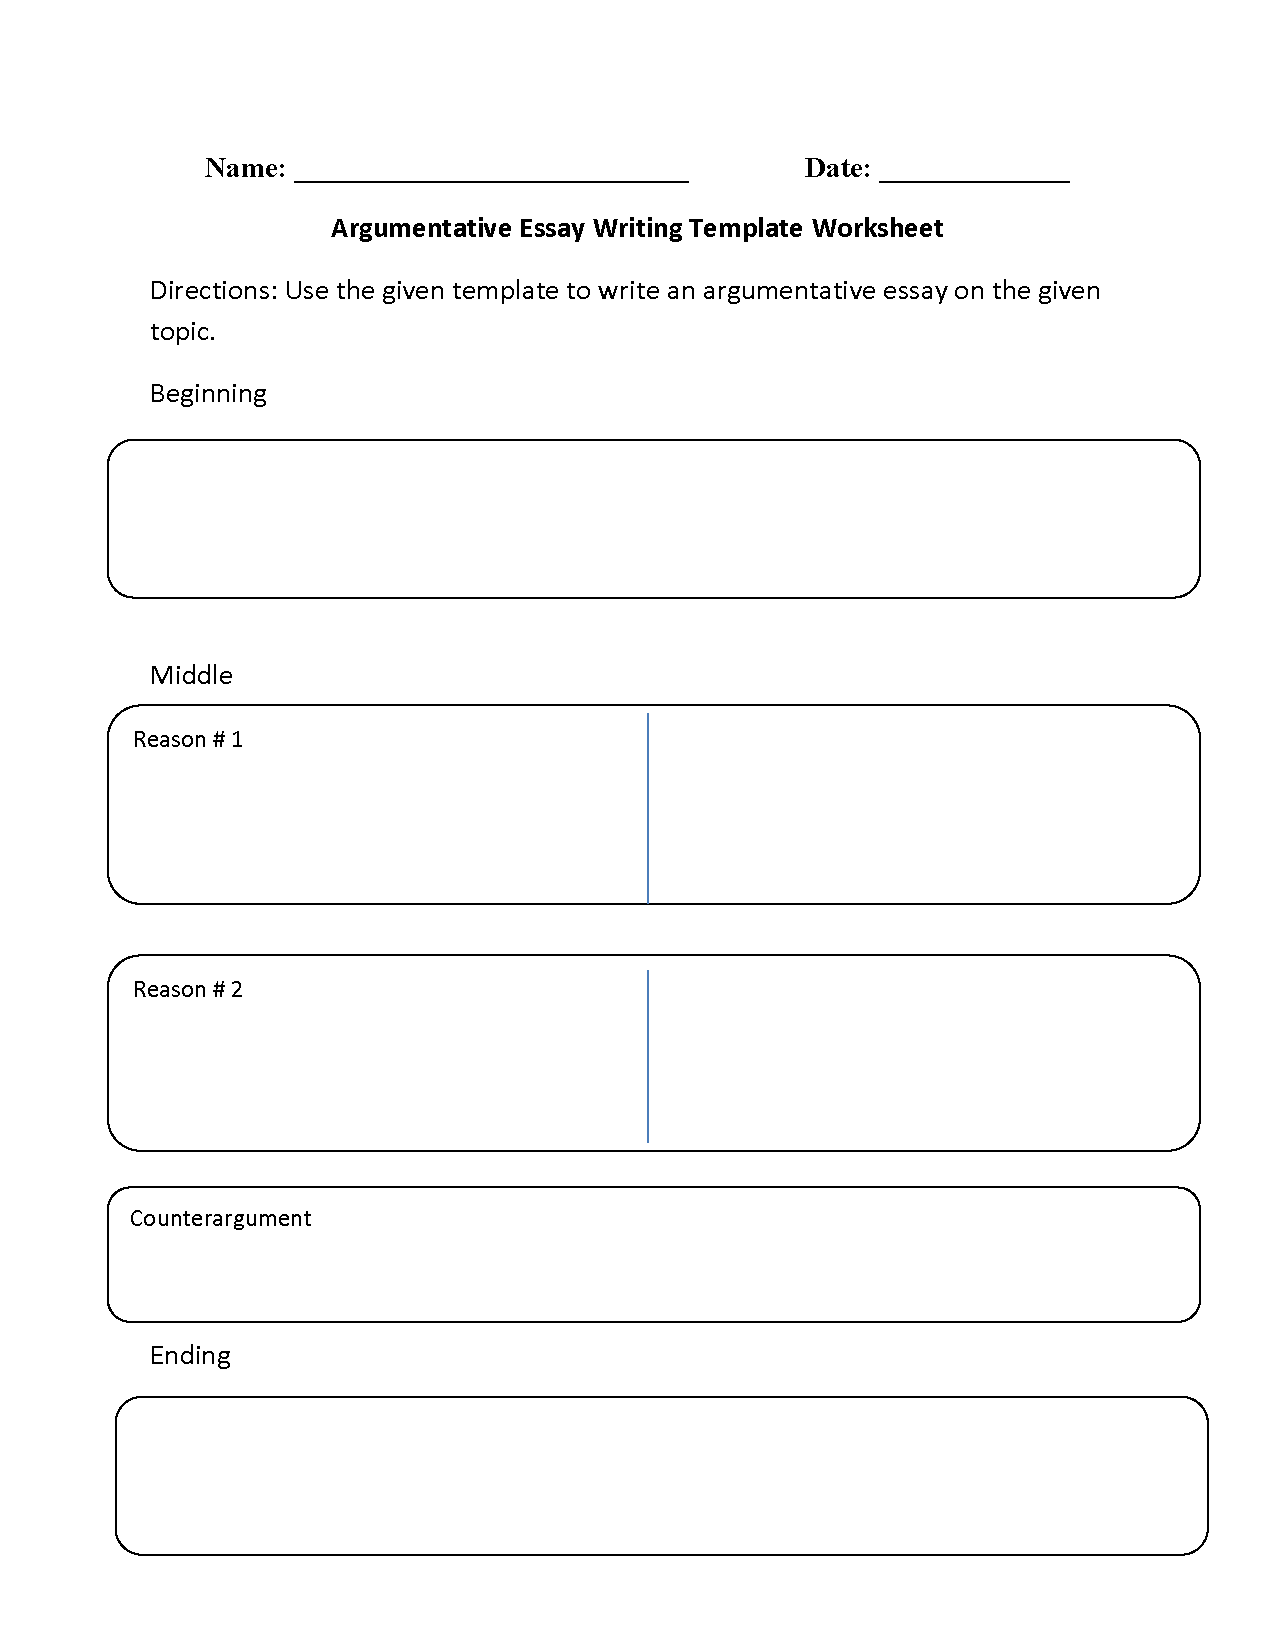 argumentative essay writing template worksheet - Essay Format